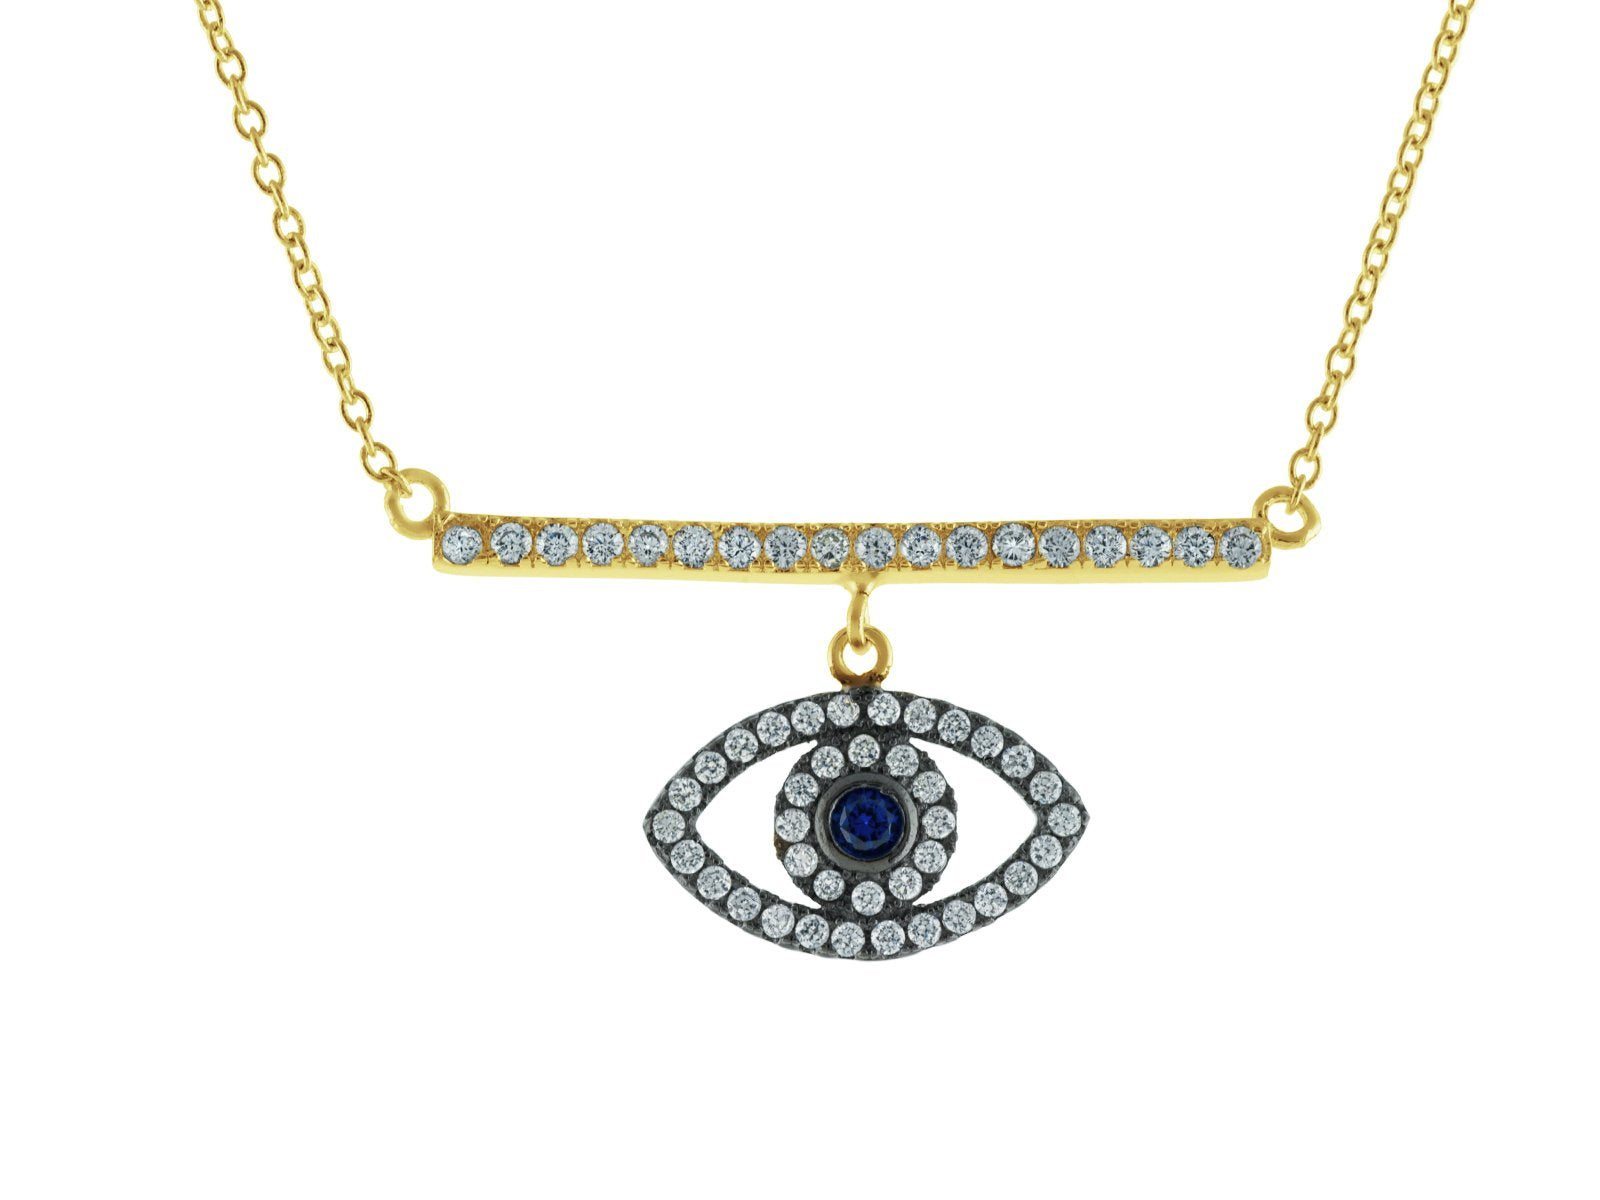 "Spiritual CZ Bar & Eye Gold Plated Sterling SIlver Necklace, 16"" from Ritual+Vibe"